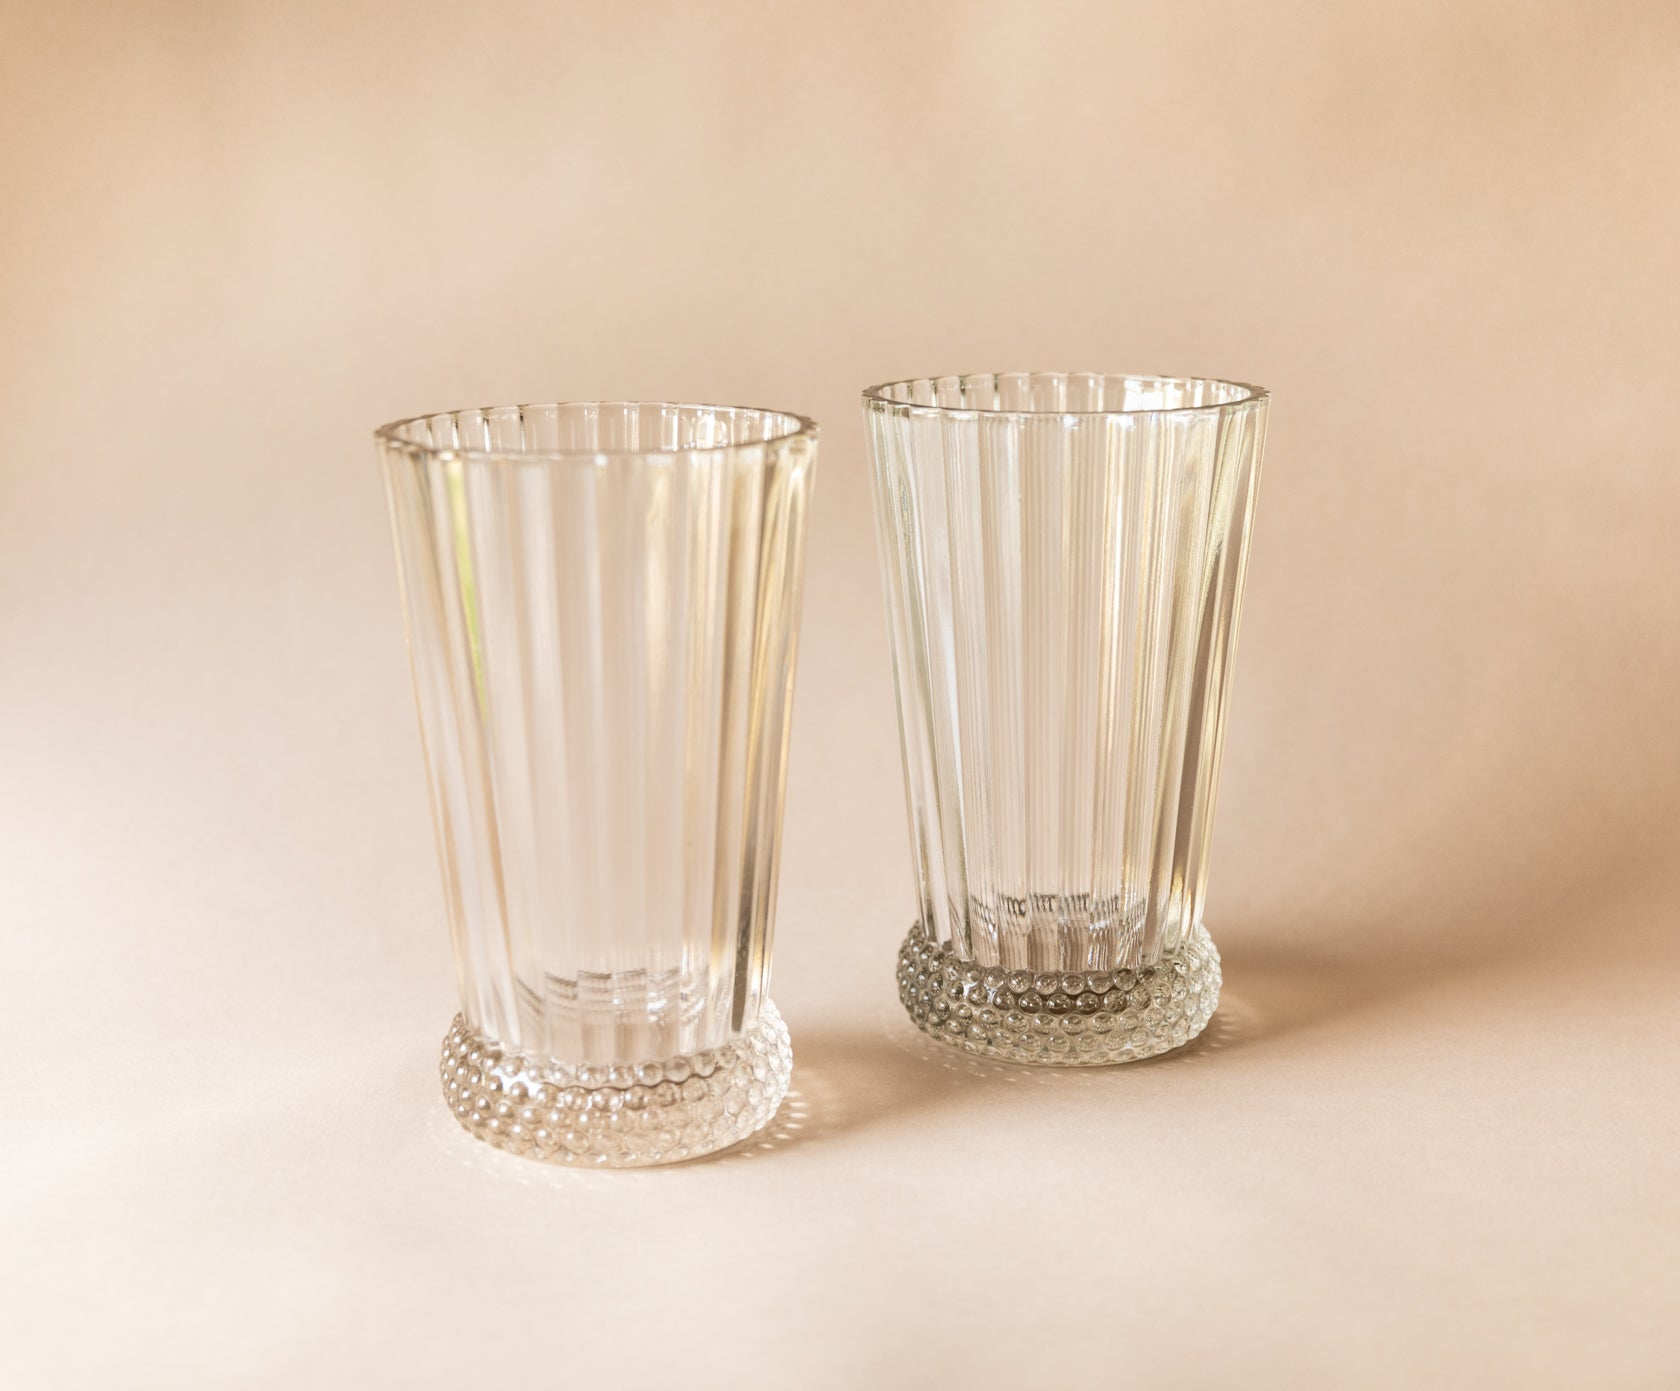 Hobnail Base Vases, set of 2